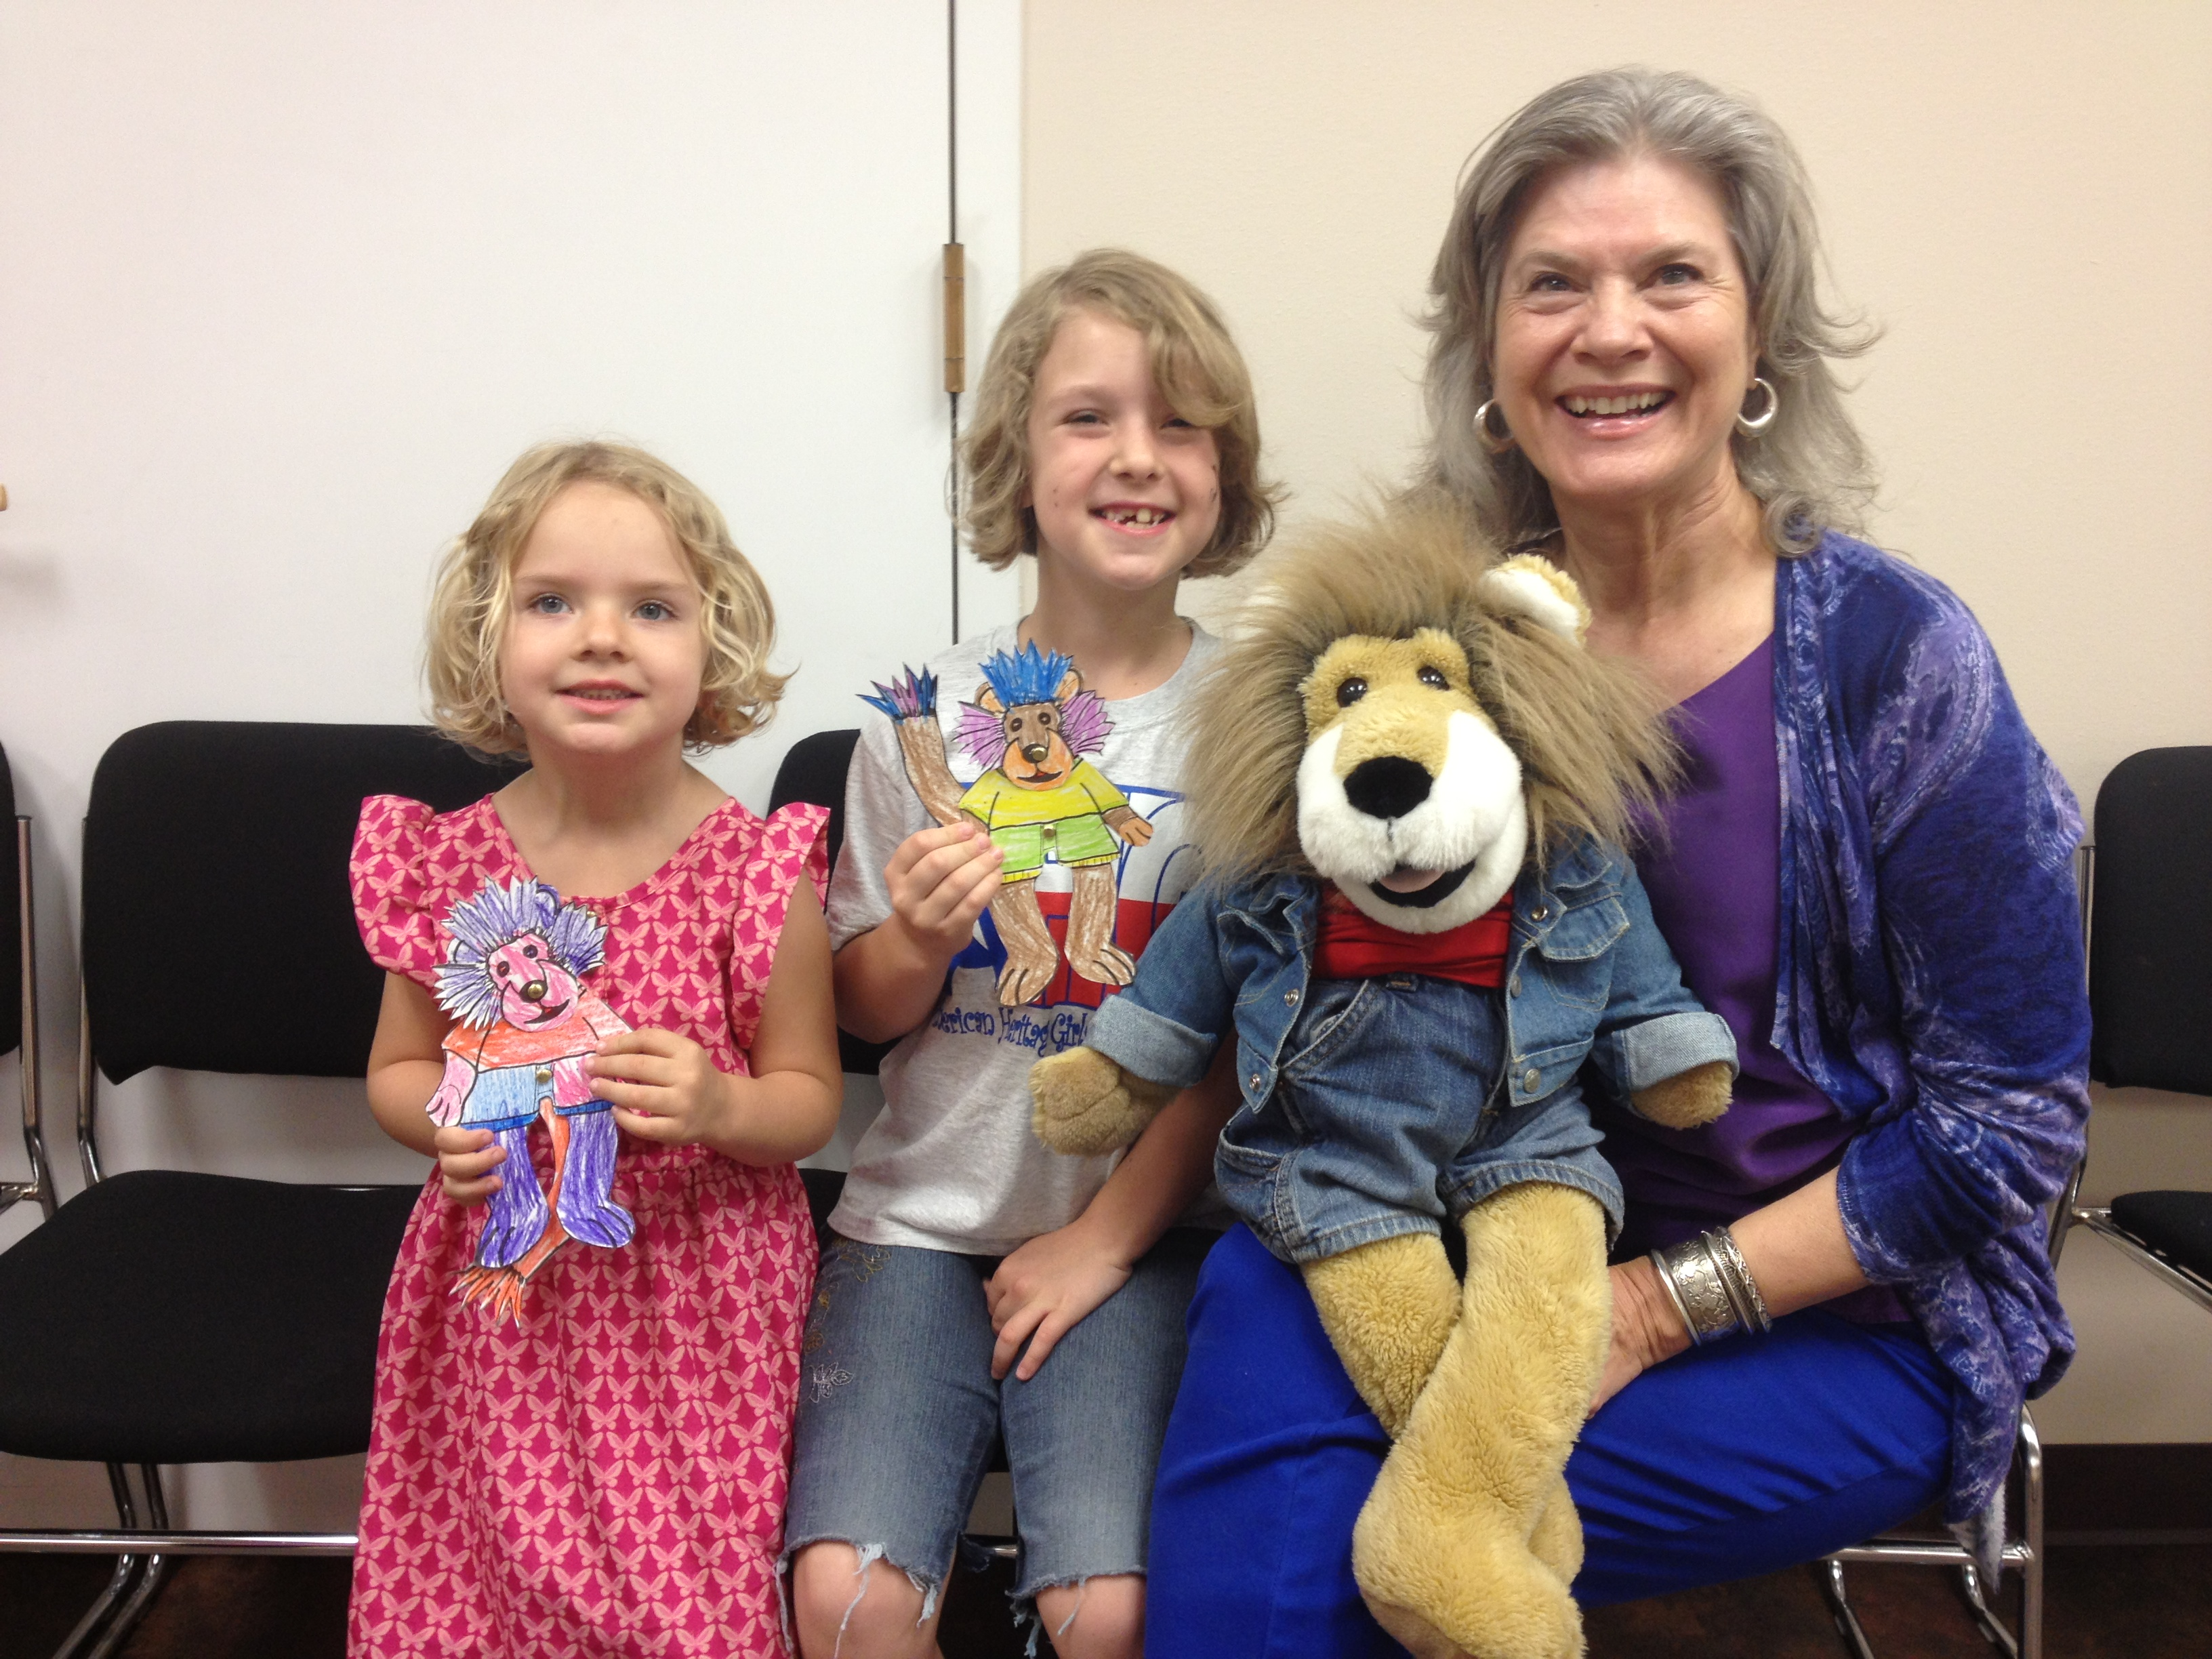 Ella and Hannah and their puppets pose with us.